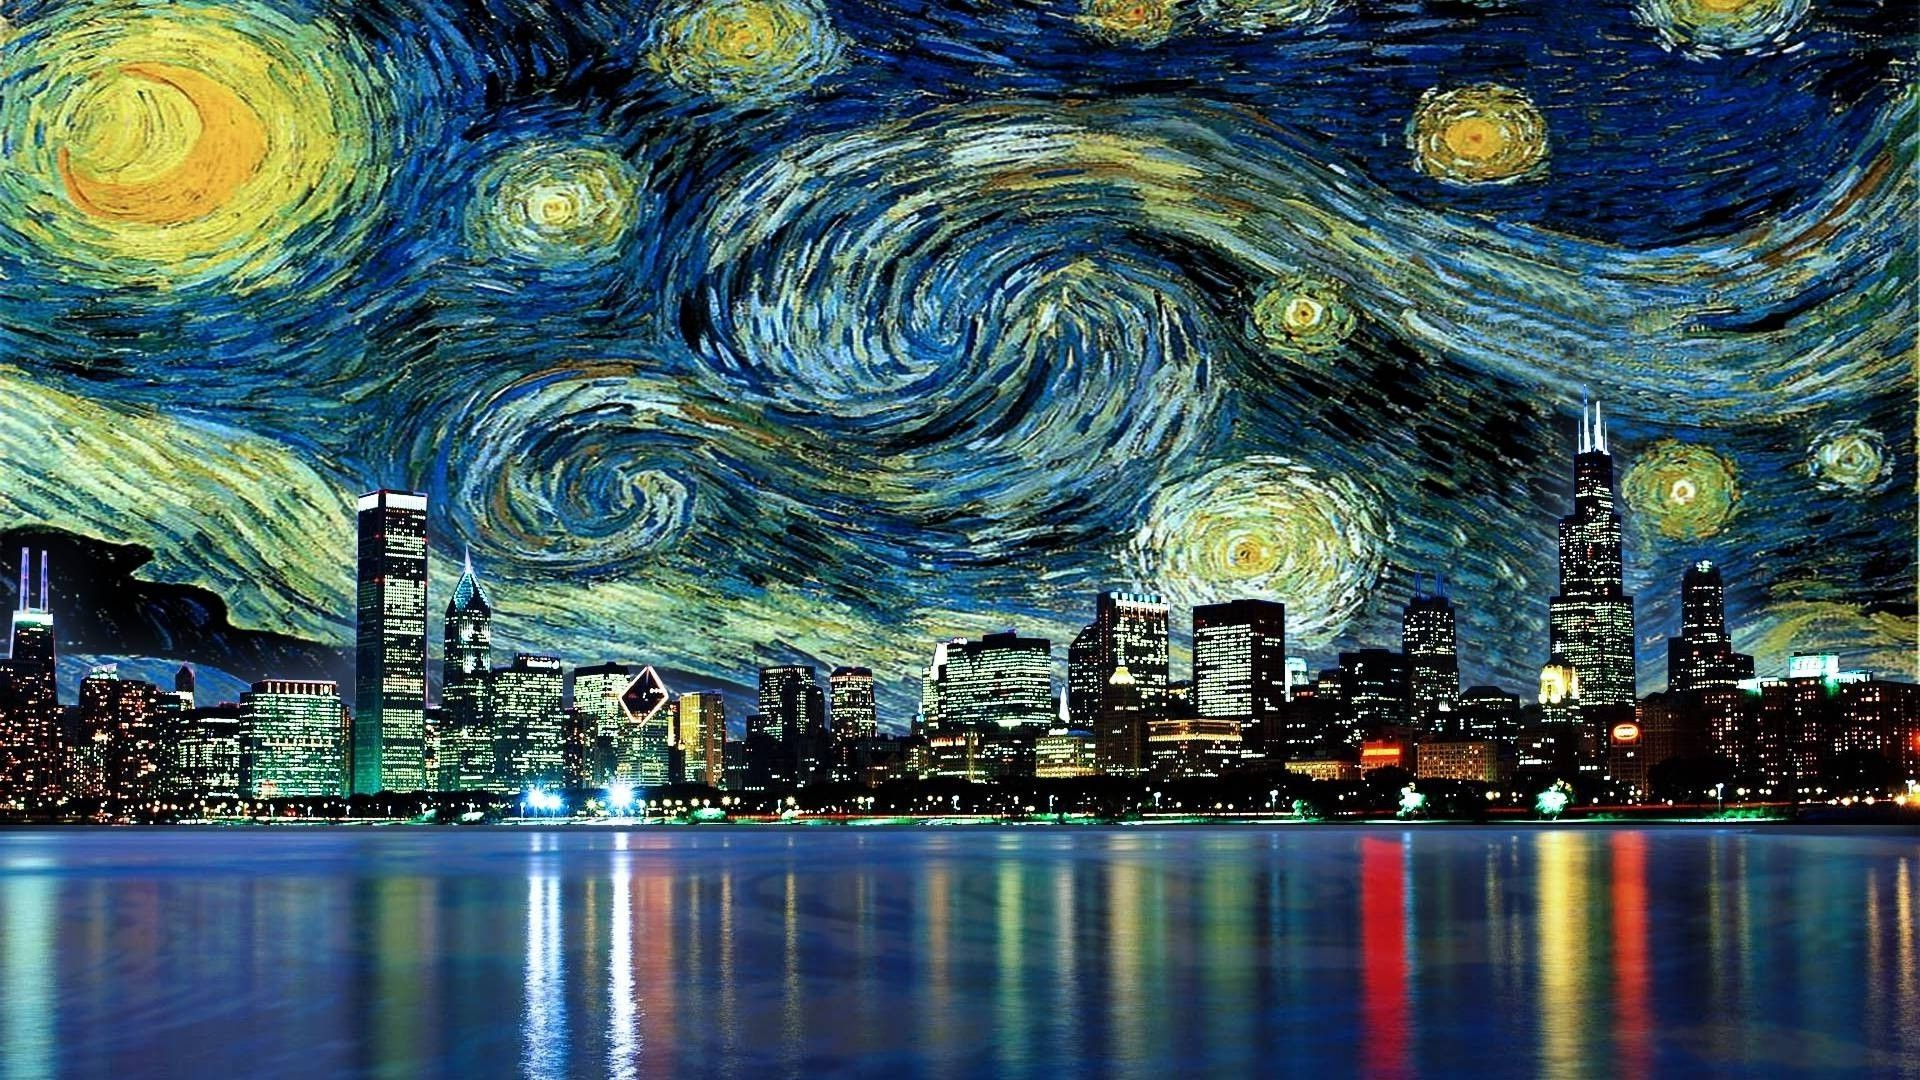 1920x1080 Vincent Van Gogh The Starry Night Free Wallpapers HD Wallpapers ...